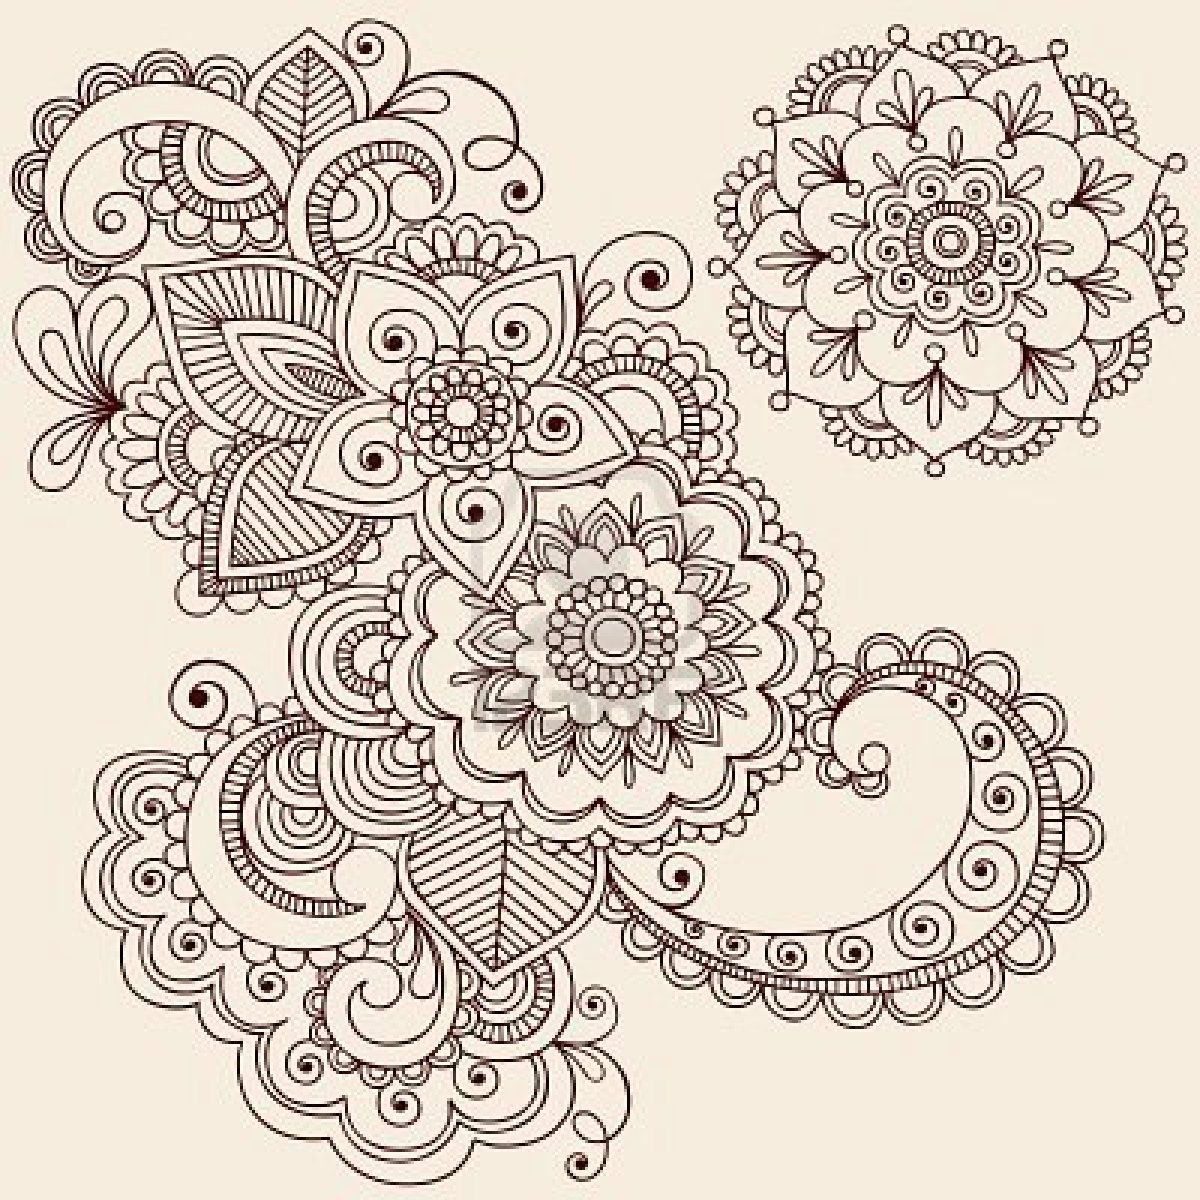 Hand Drawn Intricate Abstract Flowers And Mandala Mehndi Henna